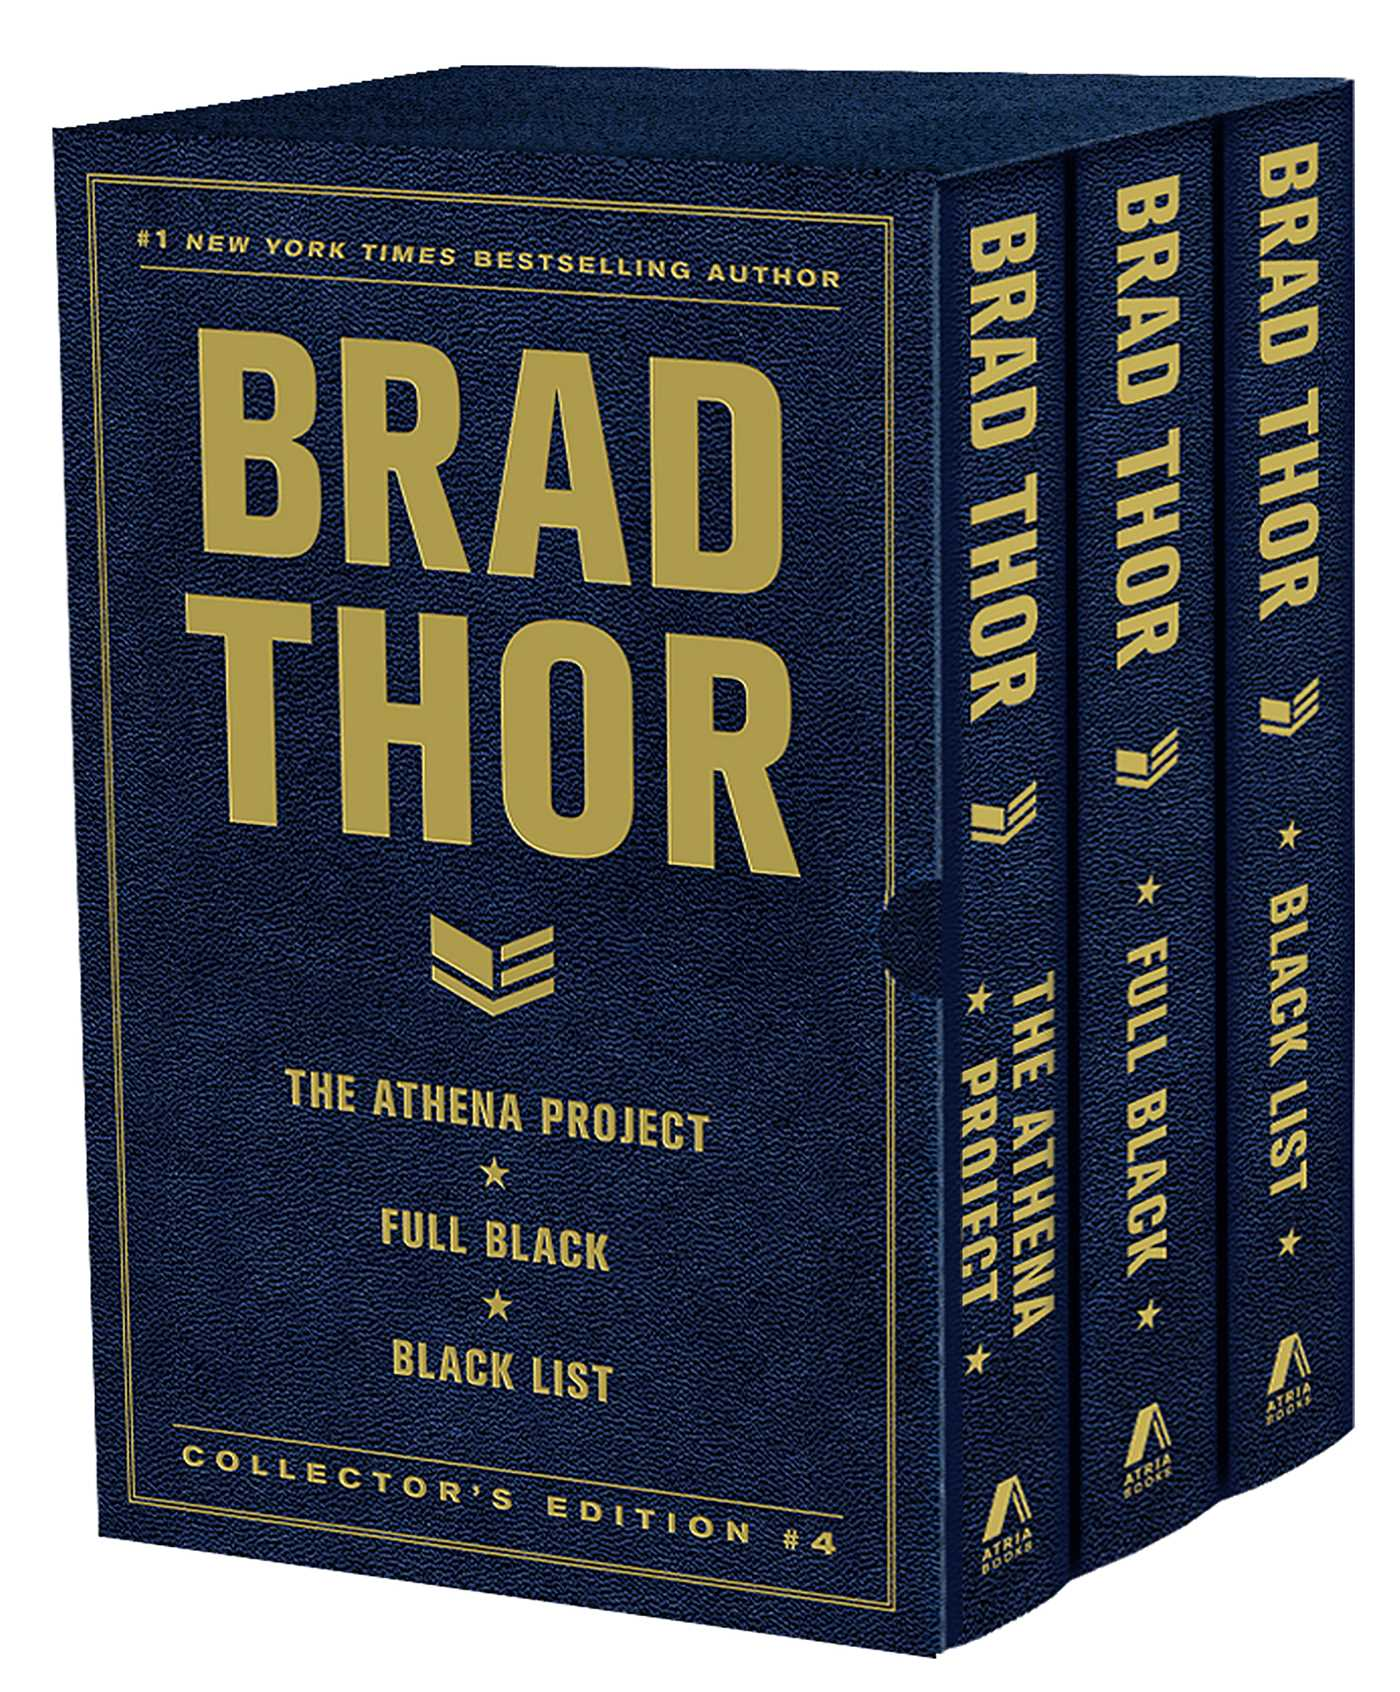 Brad thor collectors edition 4 9781476773650 hr